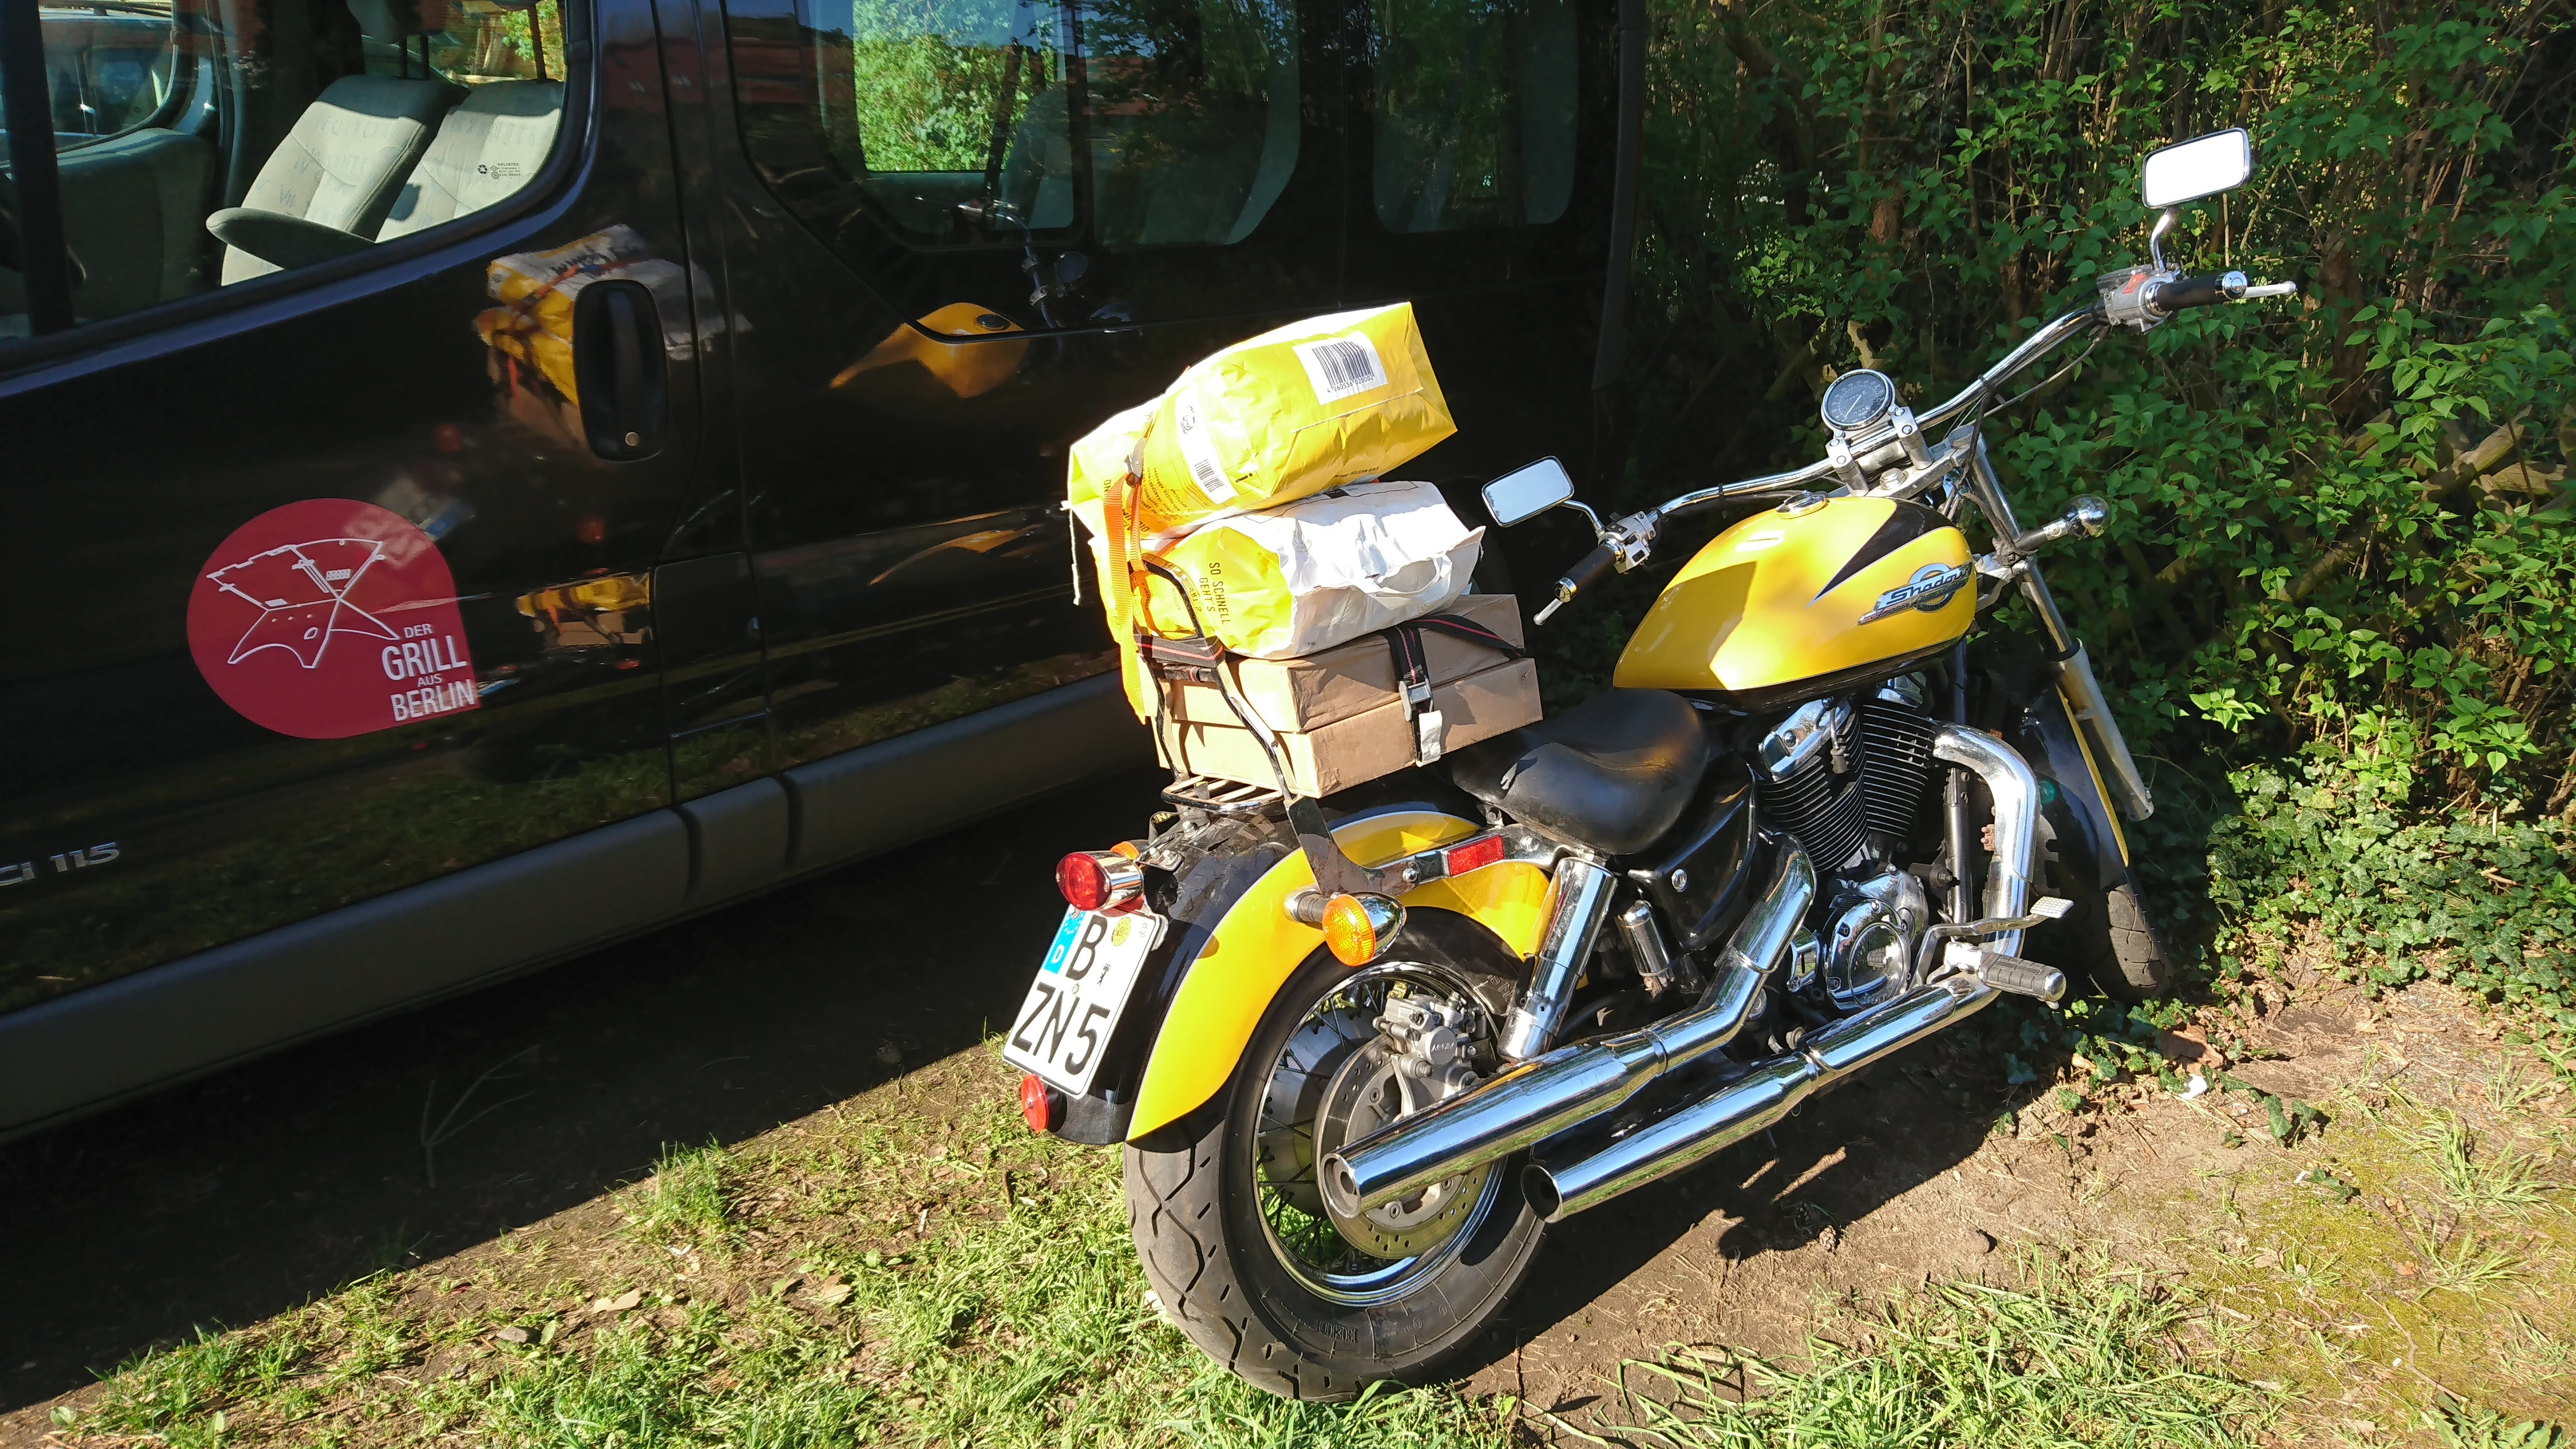 BBQ on the motorcycle